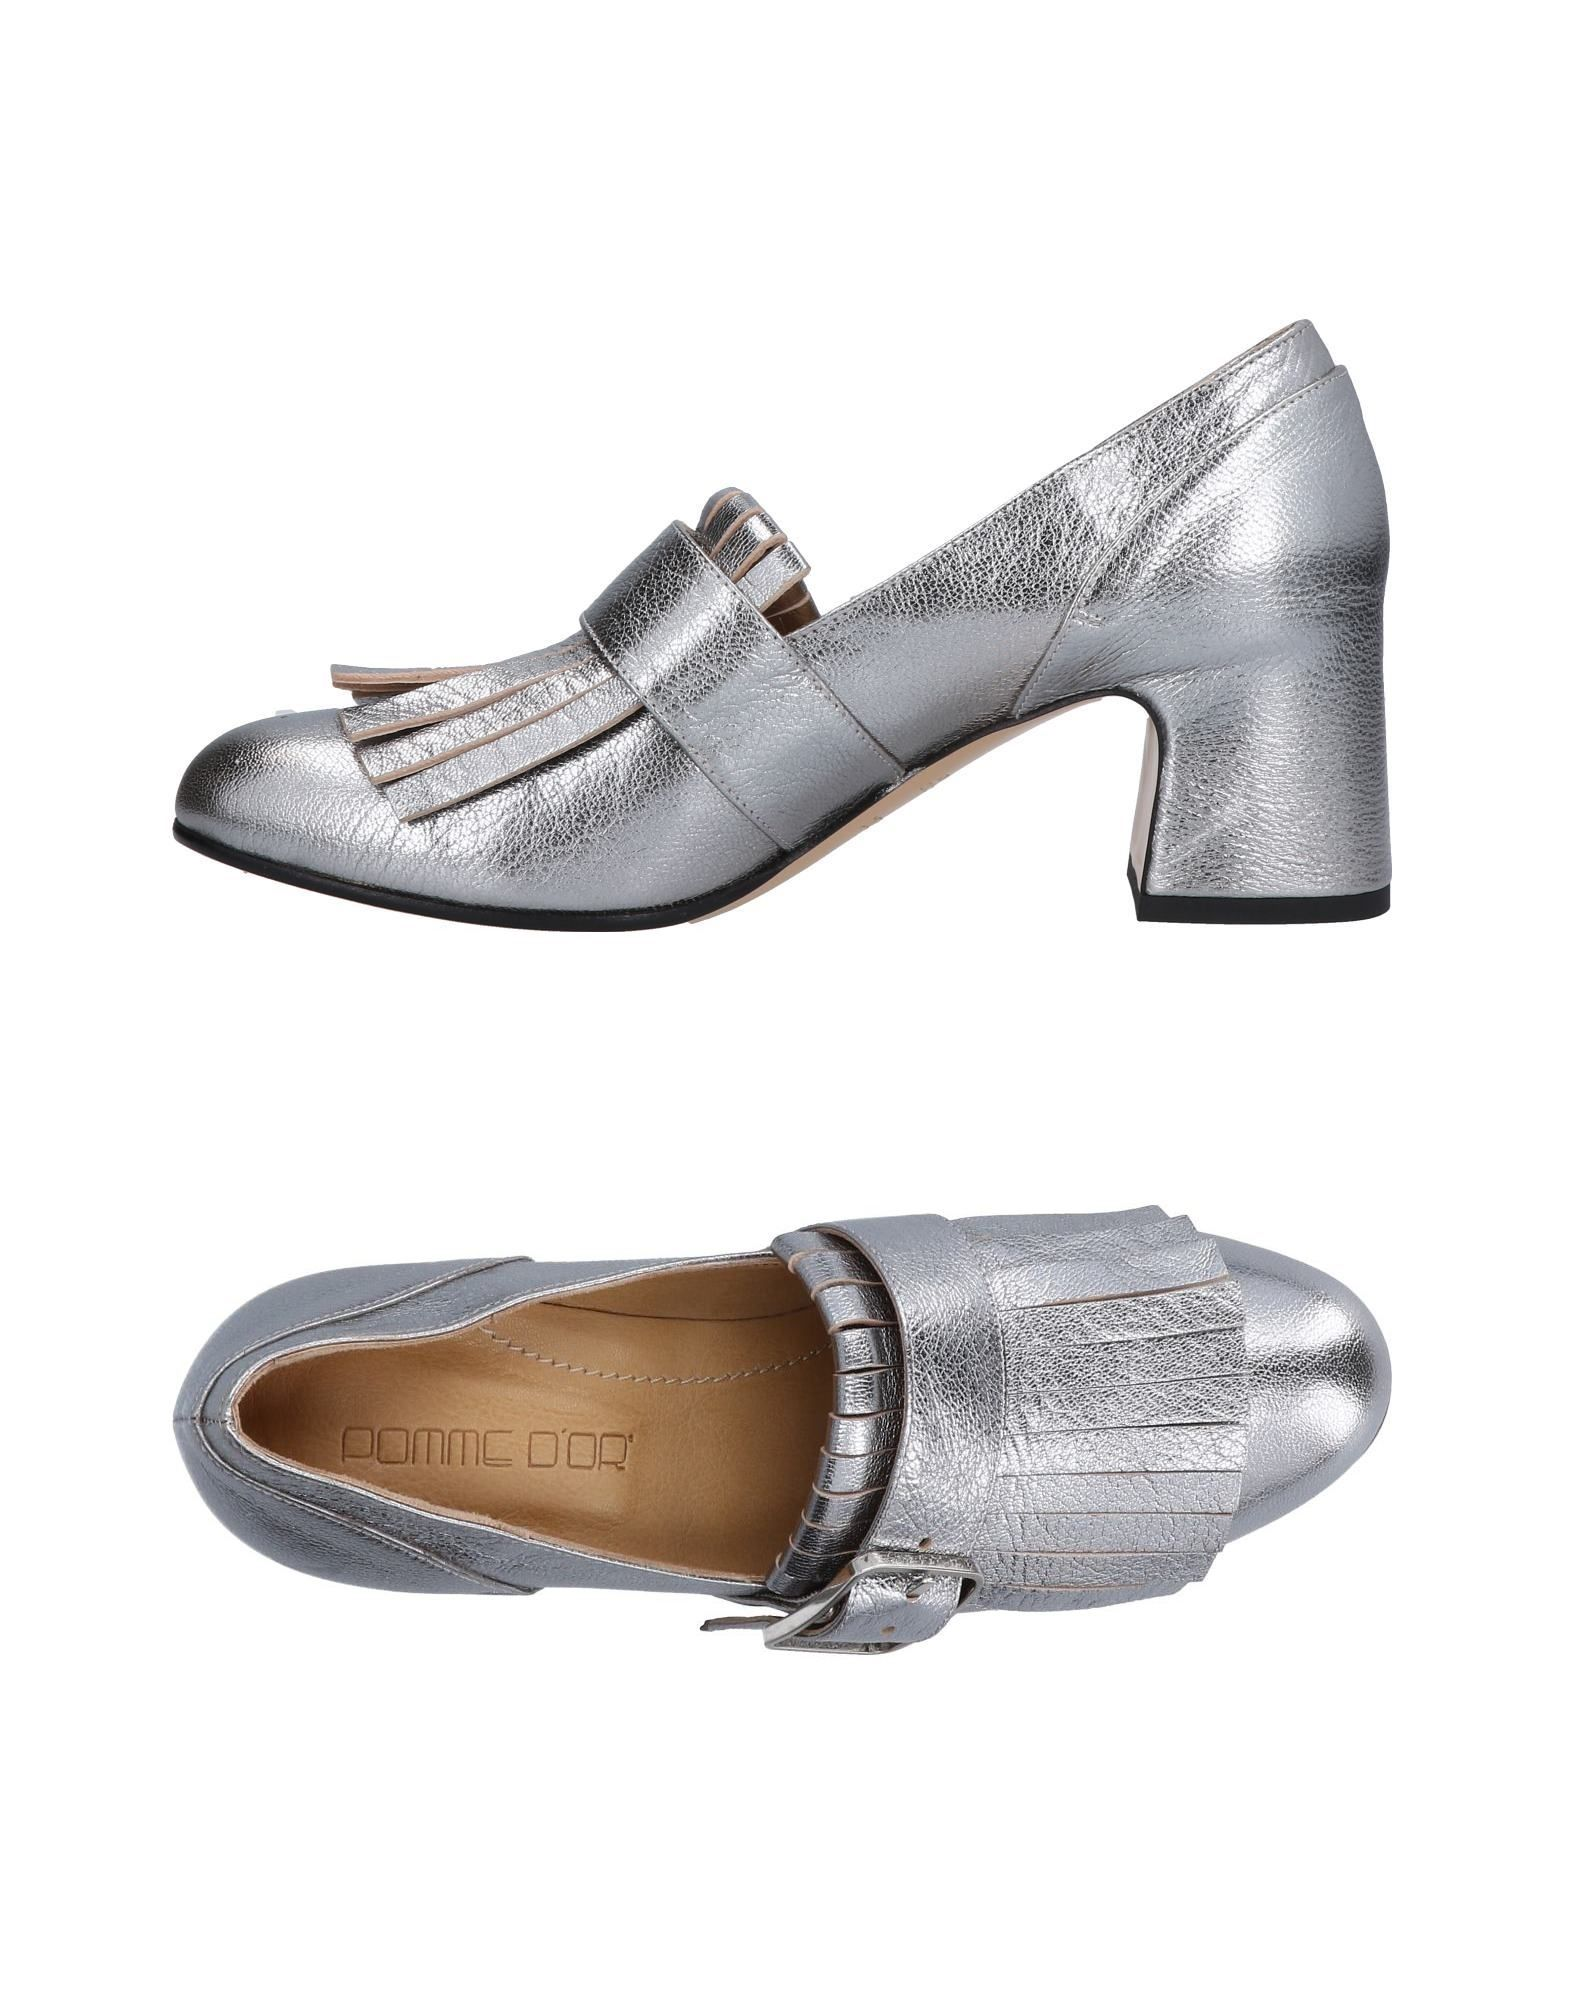 POMME D'OR Loafers in Silver